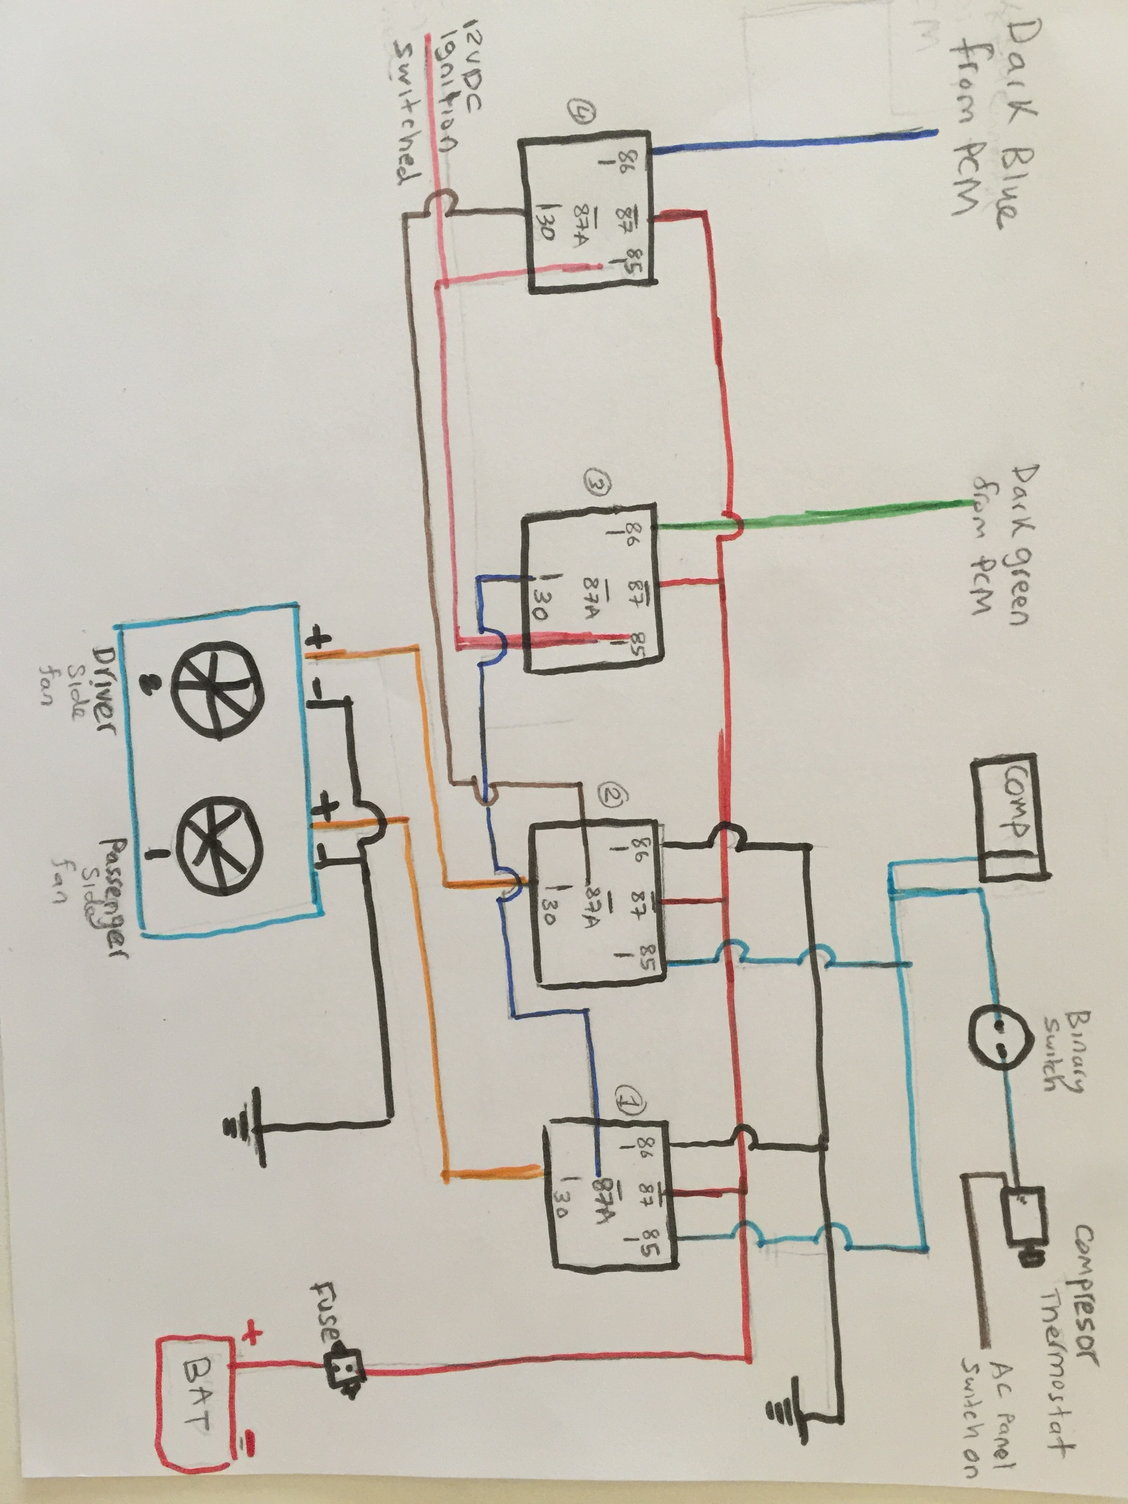 [ZHKZ_3066]  Dual cooling fan wiring with Trinary Switch and LS1 PCM - LS1TECH - Camaro  and Firebird Forum Discussion | Trinary Switch Wiring Diagram |  | LS1Tech.com